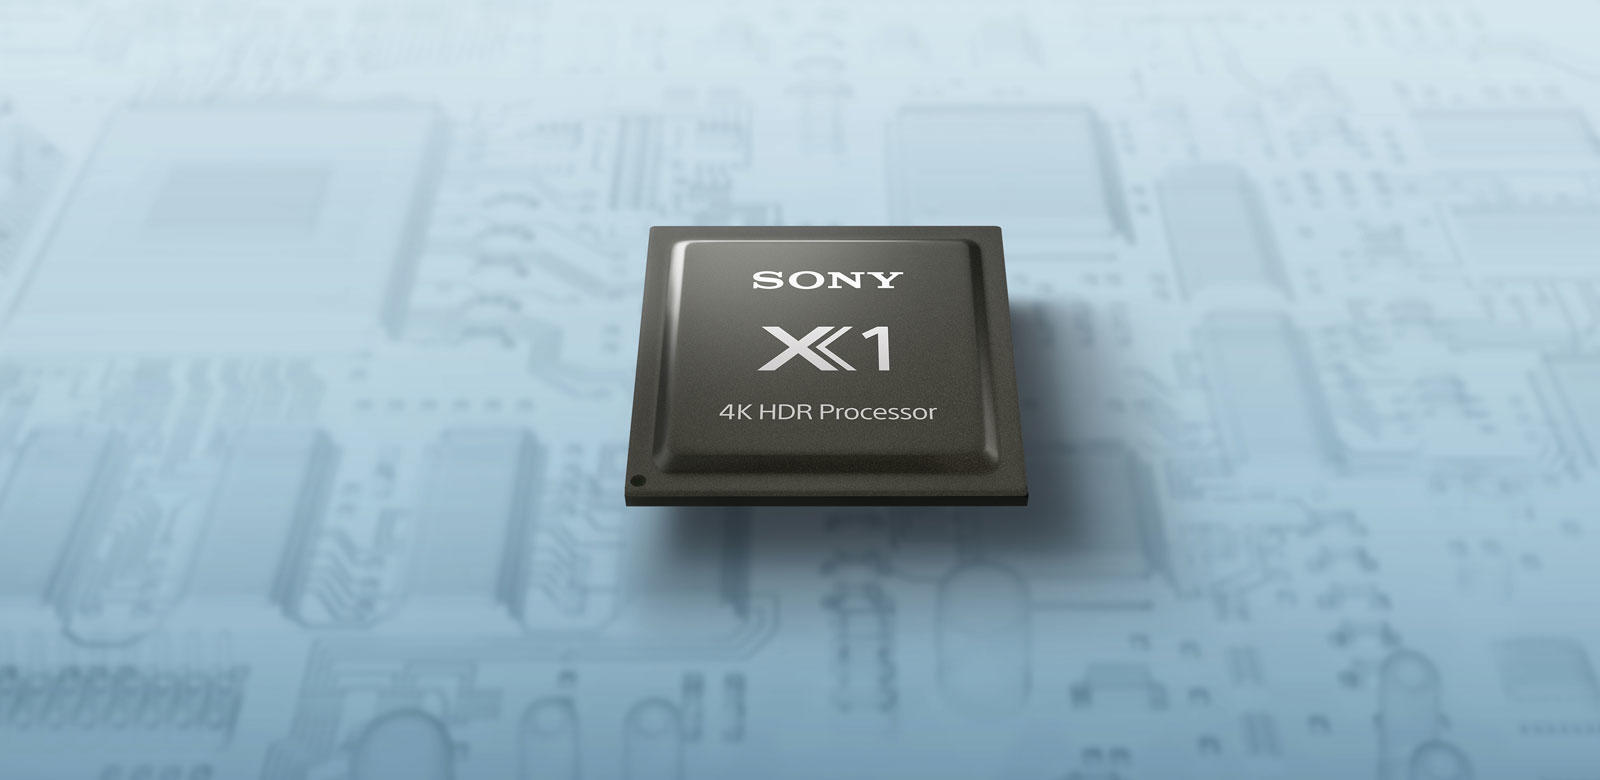 sony x1 extreme processor review